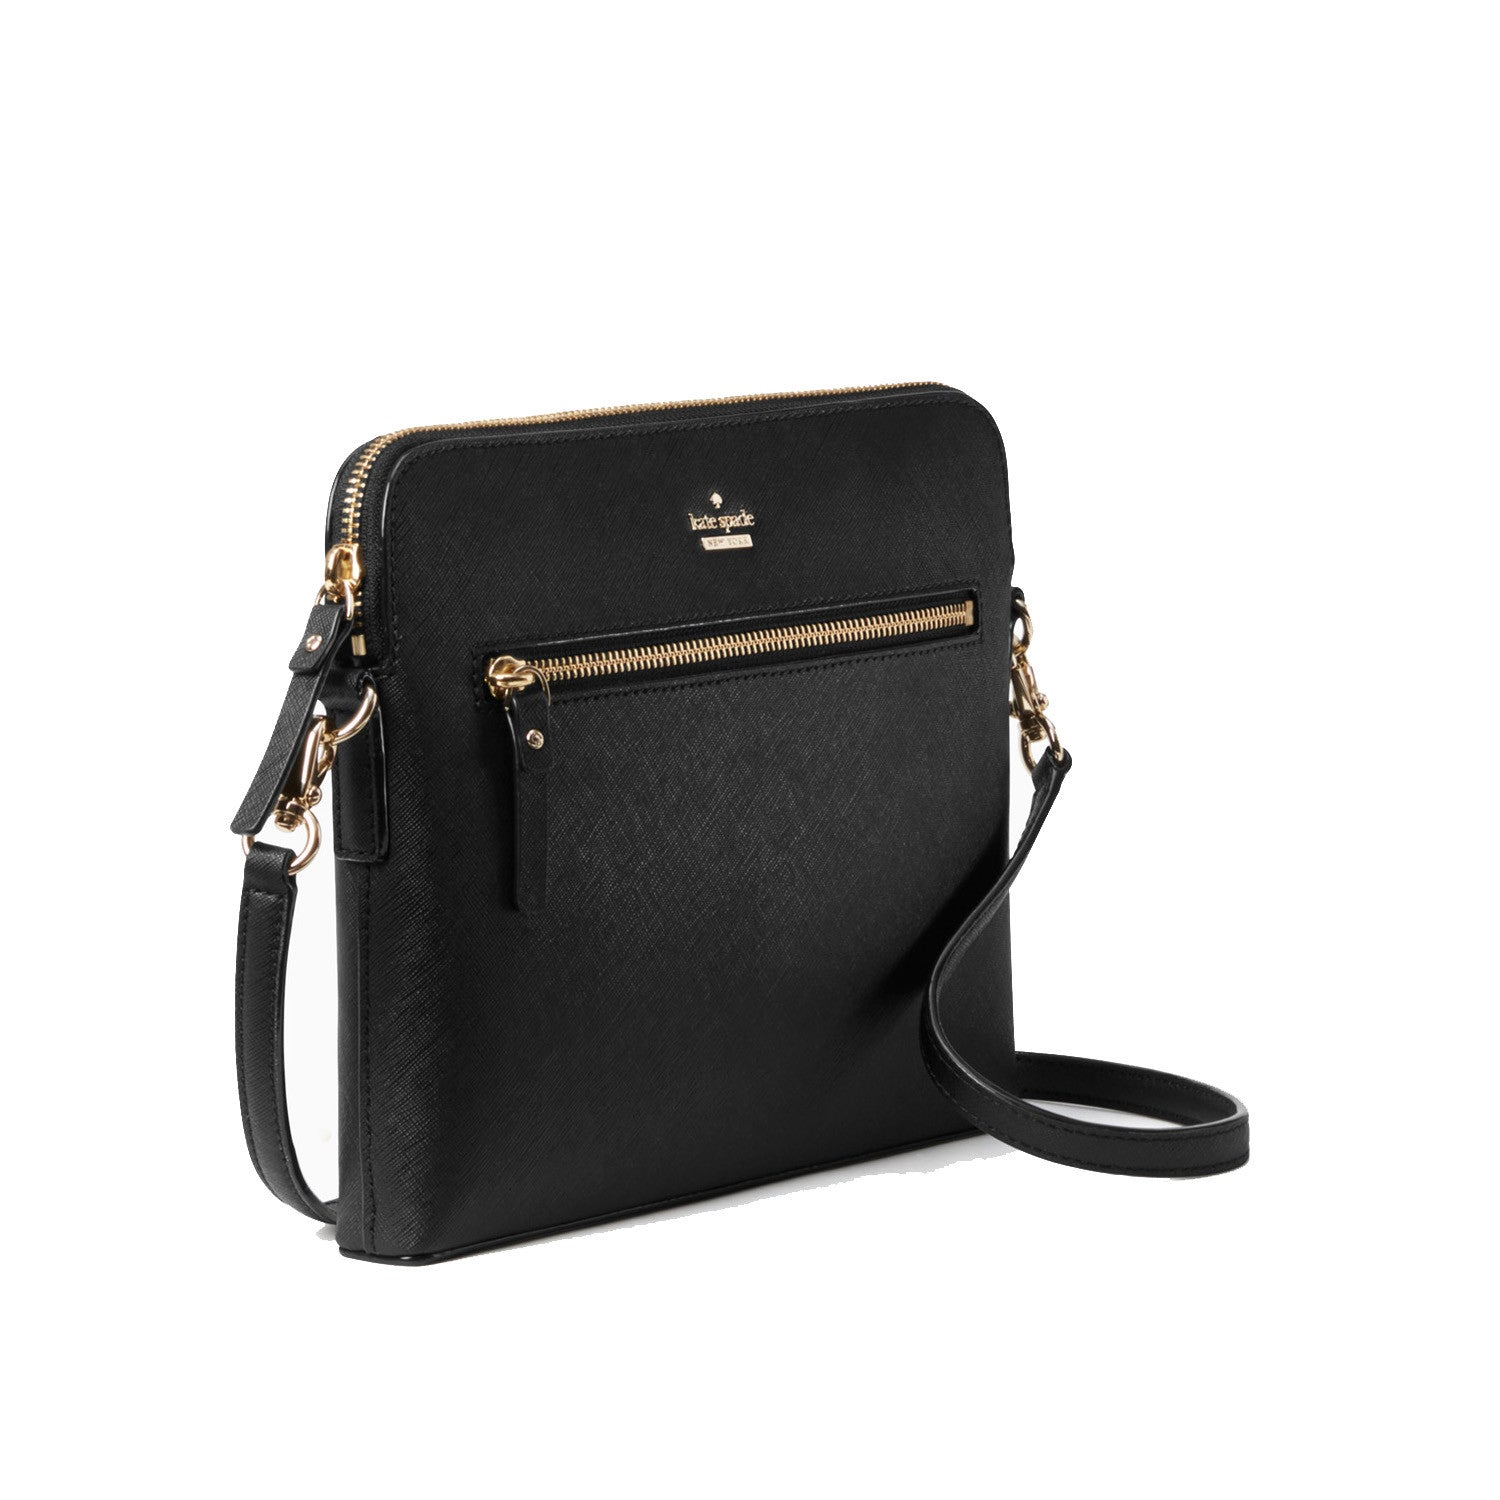 c213089ab ... Everpurse Kate Spade Zana Black Crossbody Handbag with Phone Charger  Side View ...